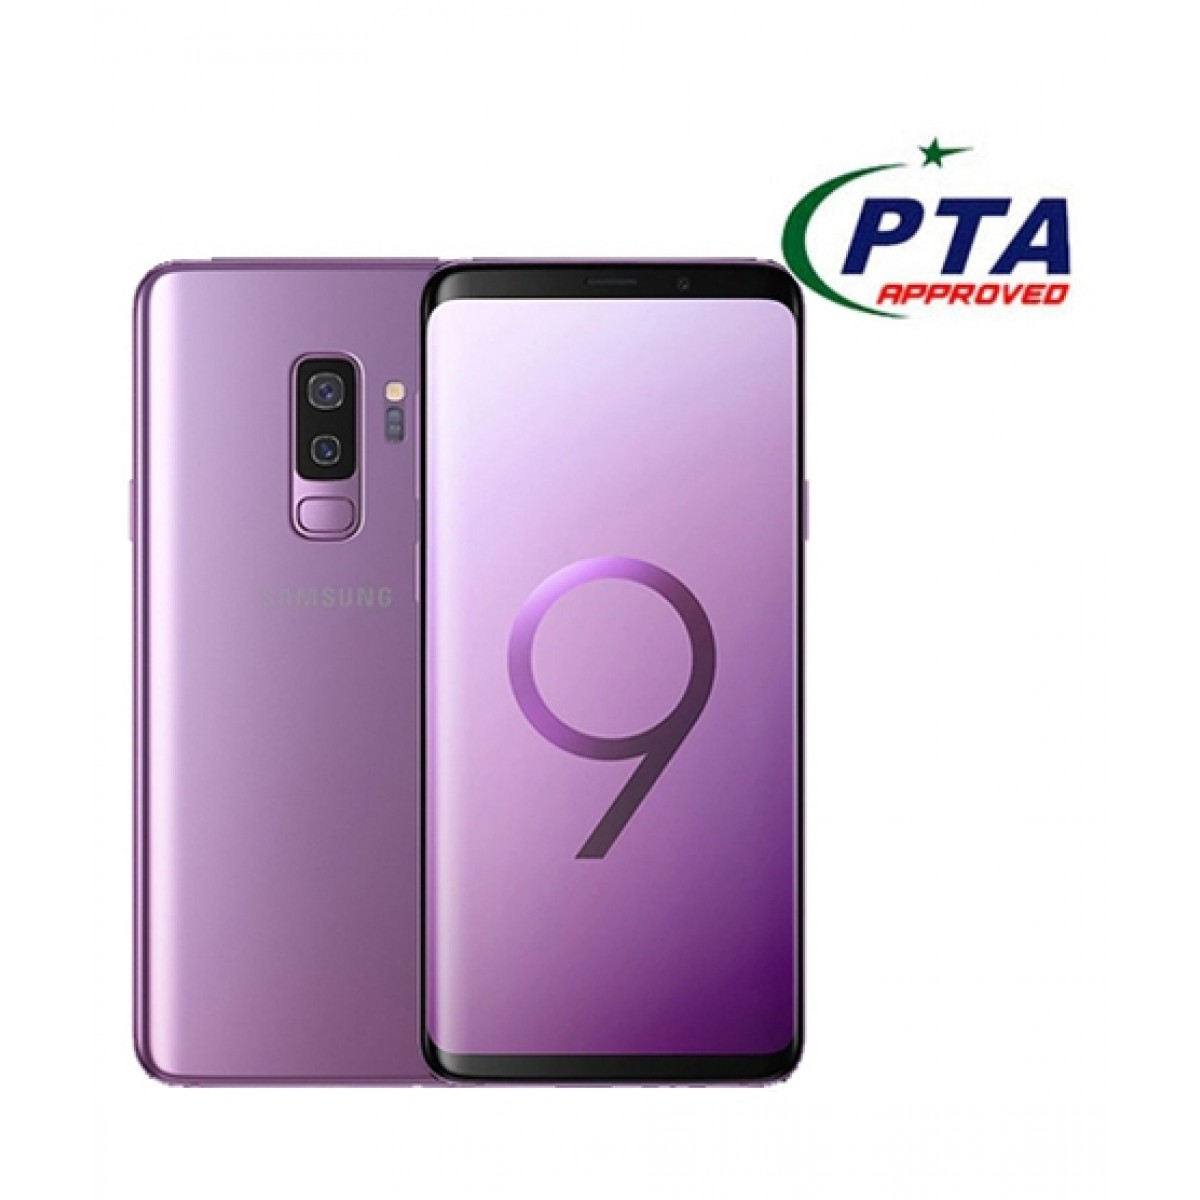 Samsung Galaxy S9+ 64GB Dual Sim Lilac Purple